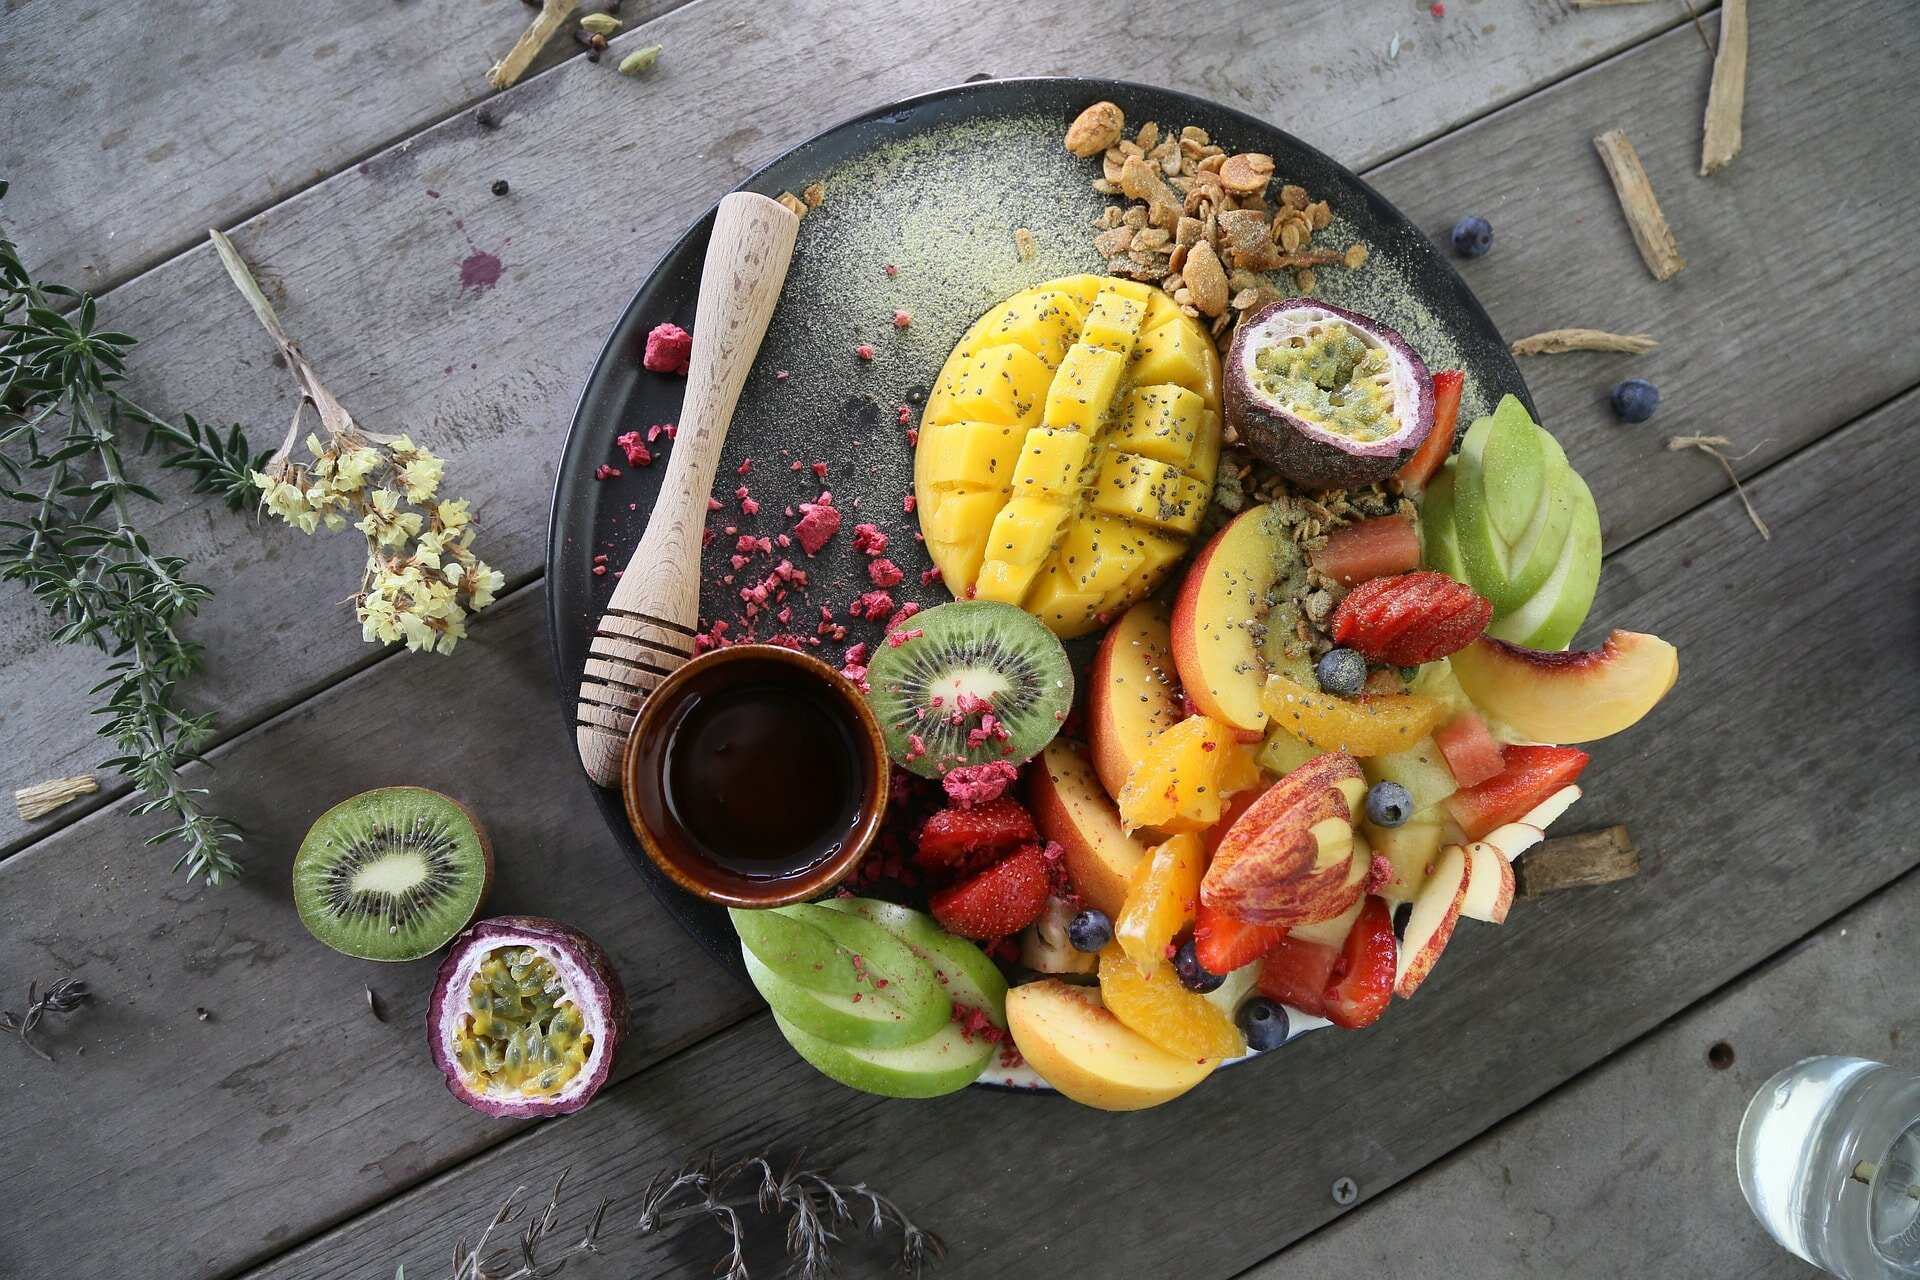 Rio Chirripo Lodge - Next, take a drive along the coast and head up to the heart of theTalamanca Mountain Range in the south central portion of Costa Rica. It is here, nestled between wooded hills and the fast flowing Chirripó River that you will find Rio Chirripó Lodge, a refuge from the pressures of a busy world, a place of refreshment for mind and body. Throughout its grounds the vivid hues of abundant tropical flowers and shrubs beguile the eye and enchant the spirit.In both locations, indulge in healthy, inspiring dishes, incorporating a wide selection of locally sourced fresh organic ingredients, providing a culinary experience that will nourish, satisfy and make your Costa Rican escape as perfect as nature intended.